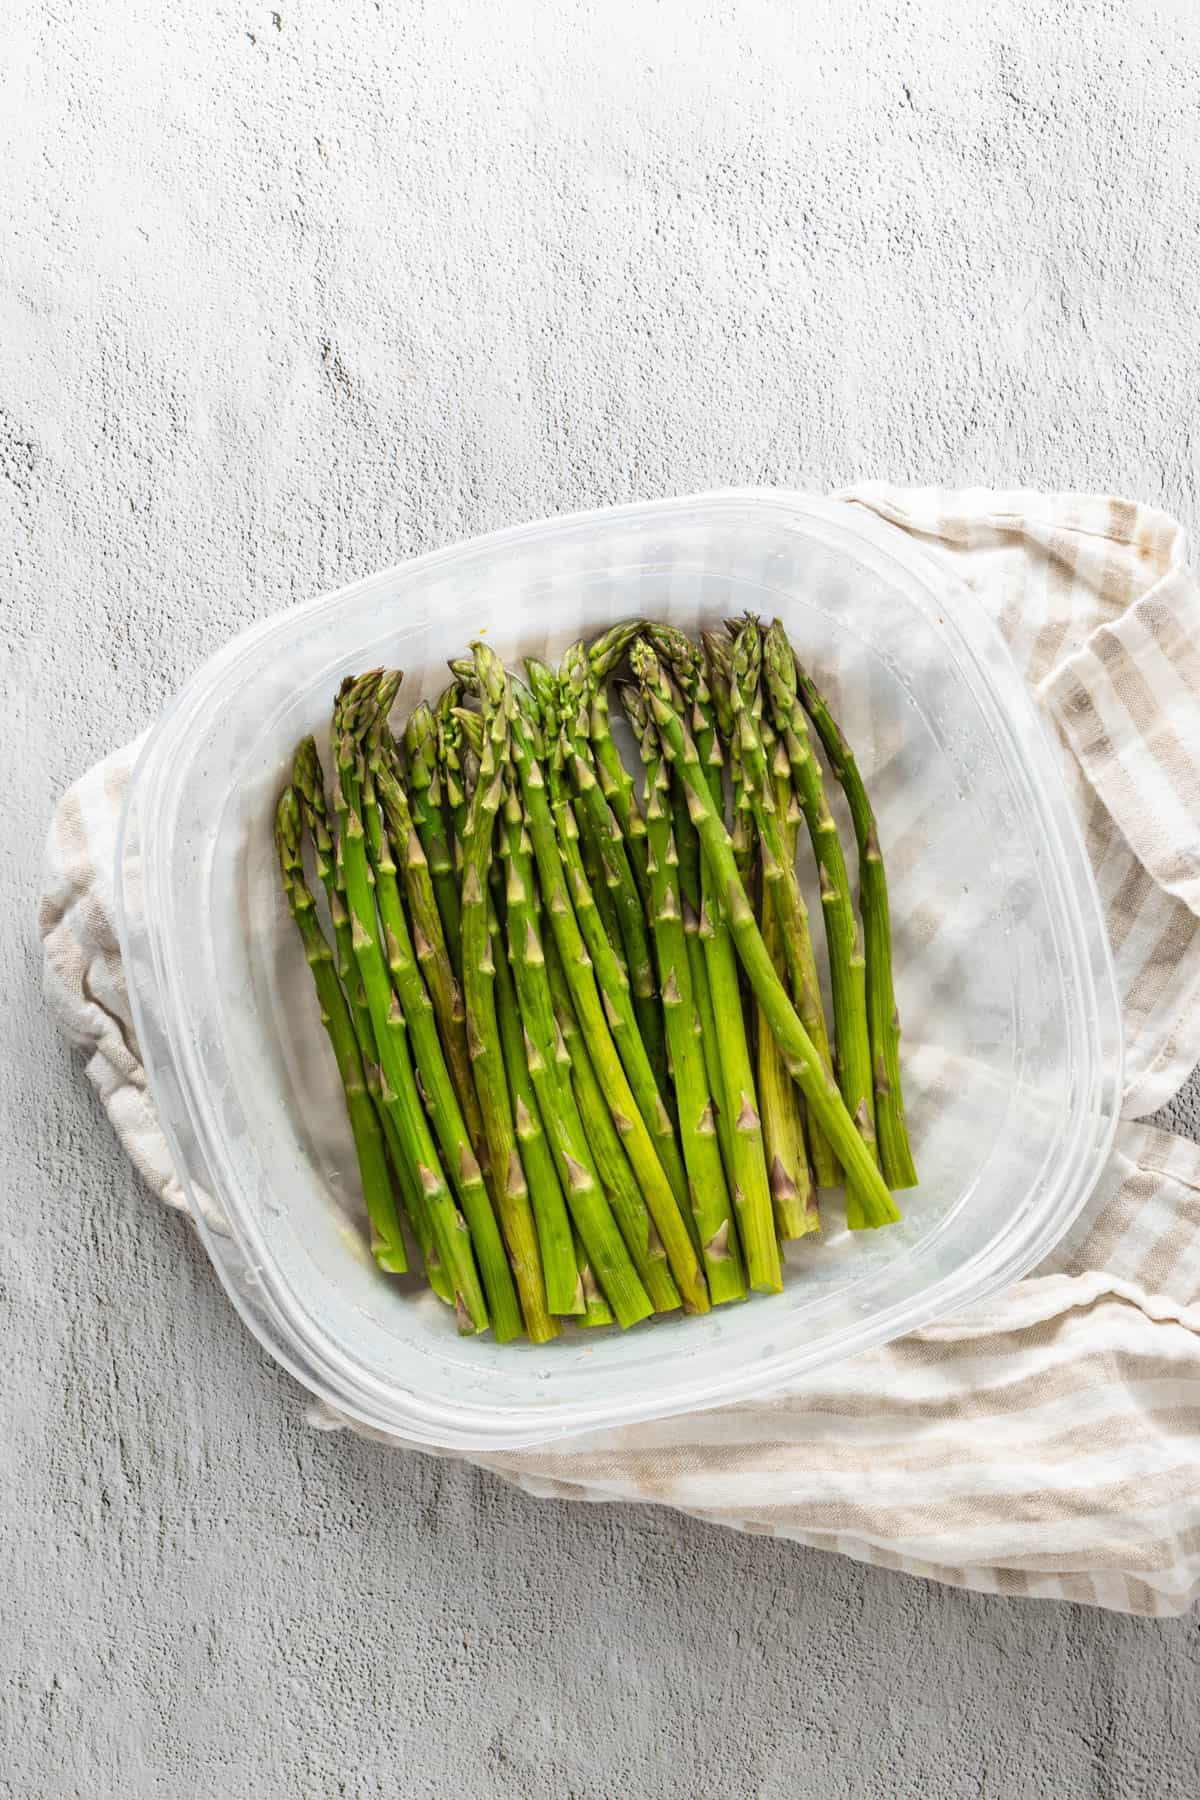 Asparagus in microwave safe container after being steamed